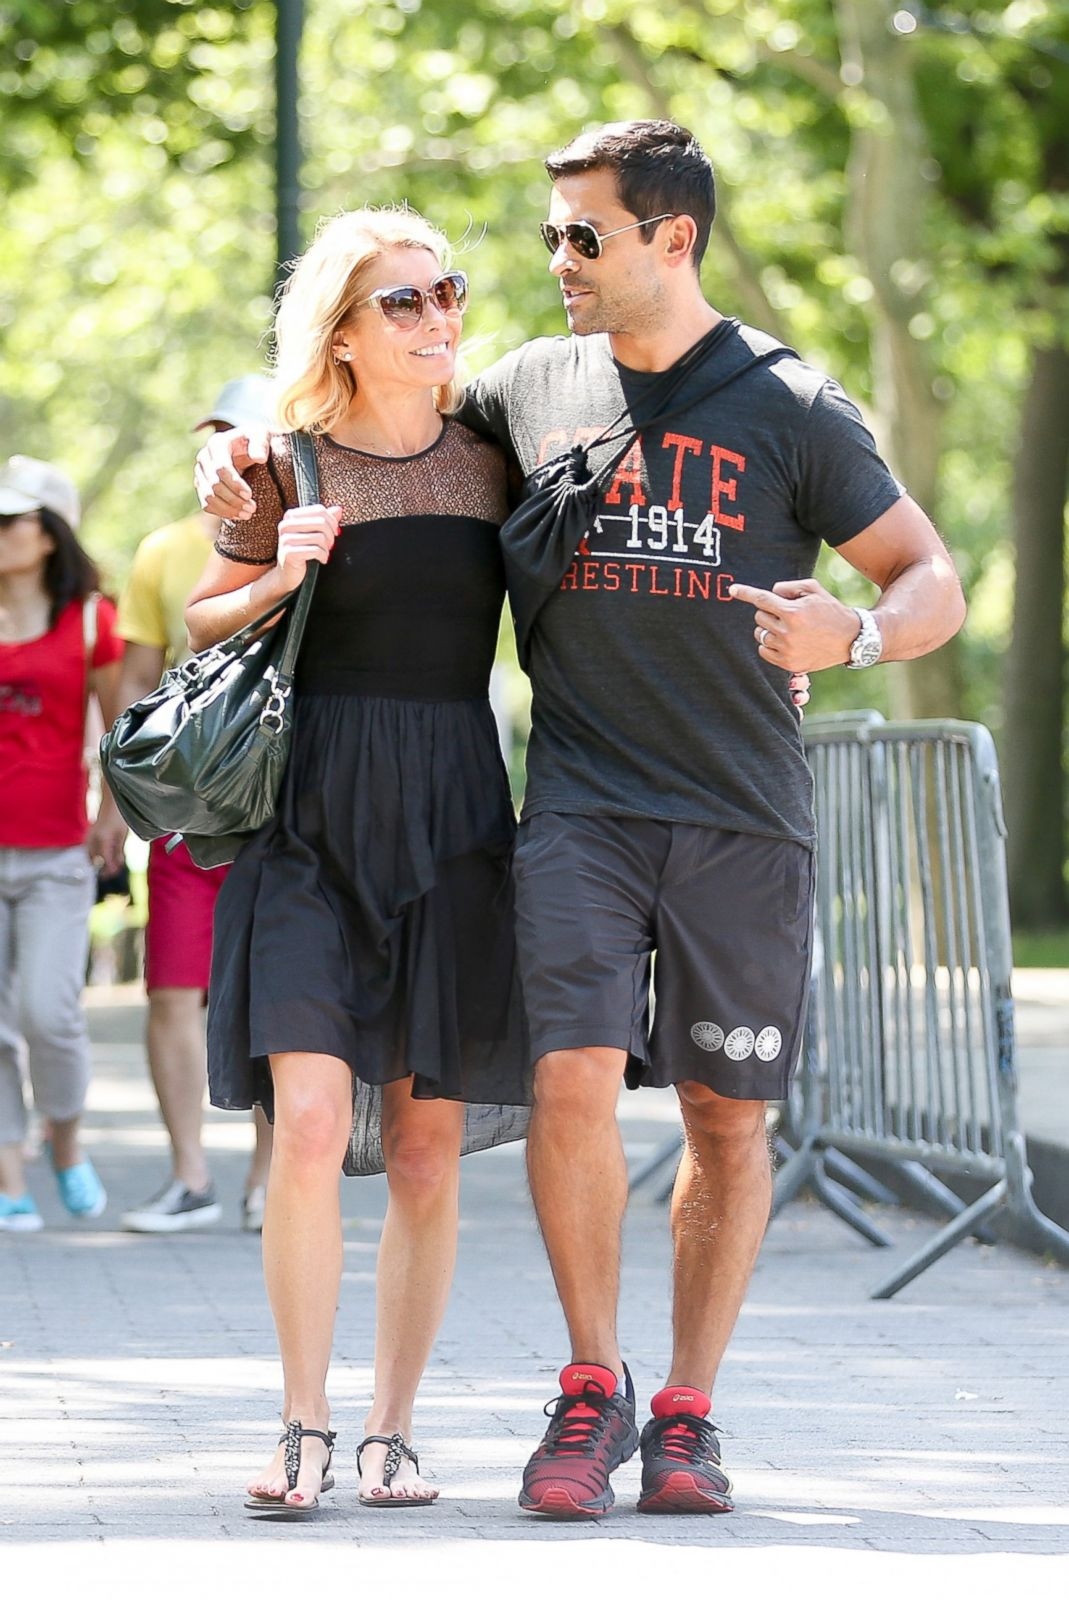 Kelly Ripa and Mark Consuelos Take a Walk in the Park Picture | Kelly Ripa's  life in photos - ABC News